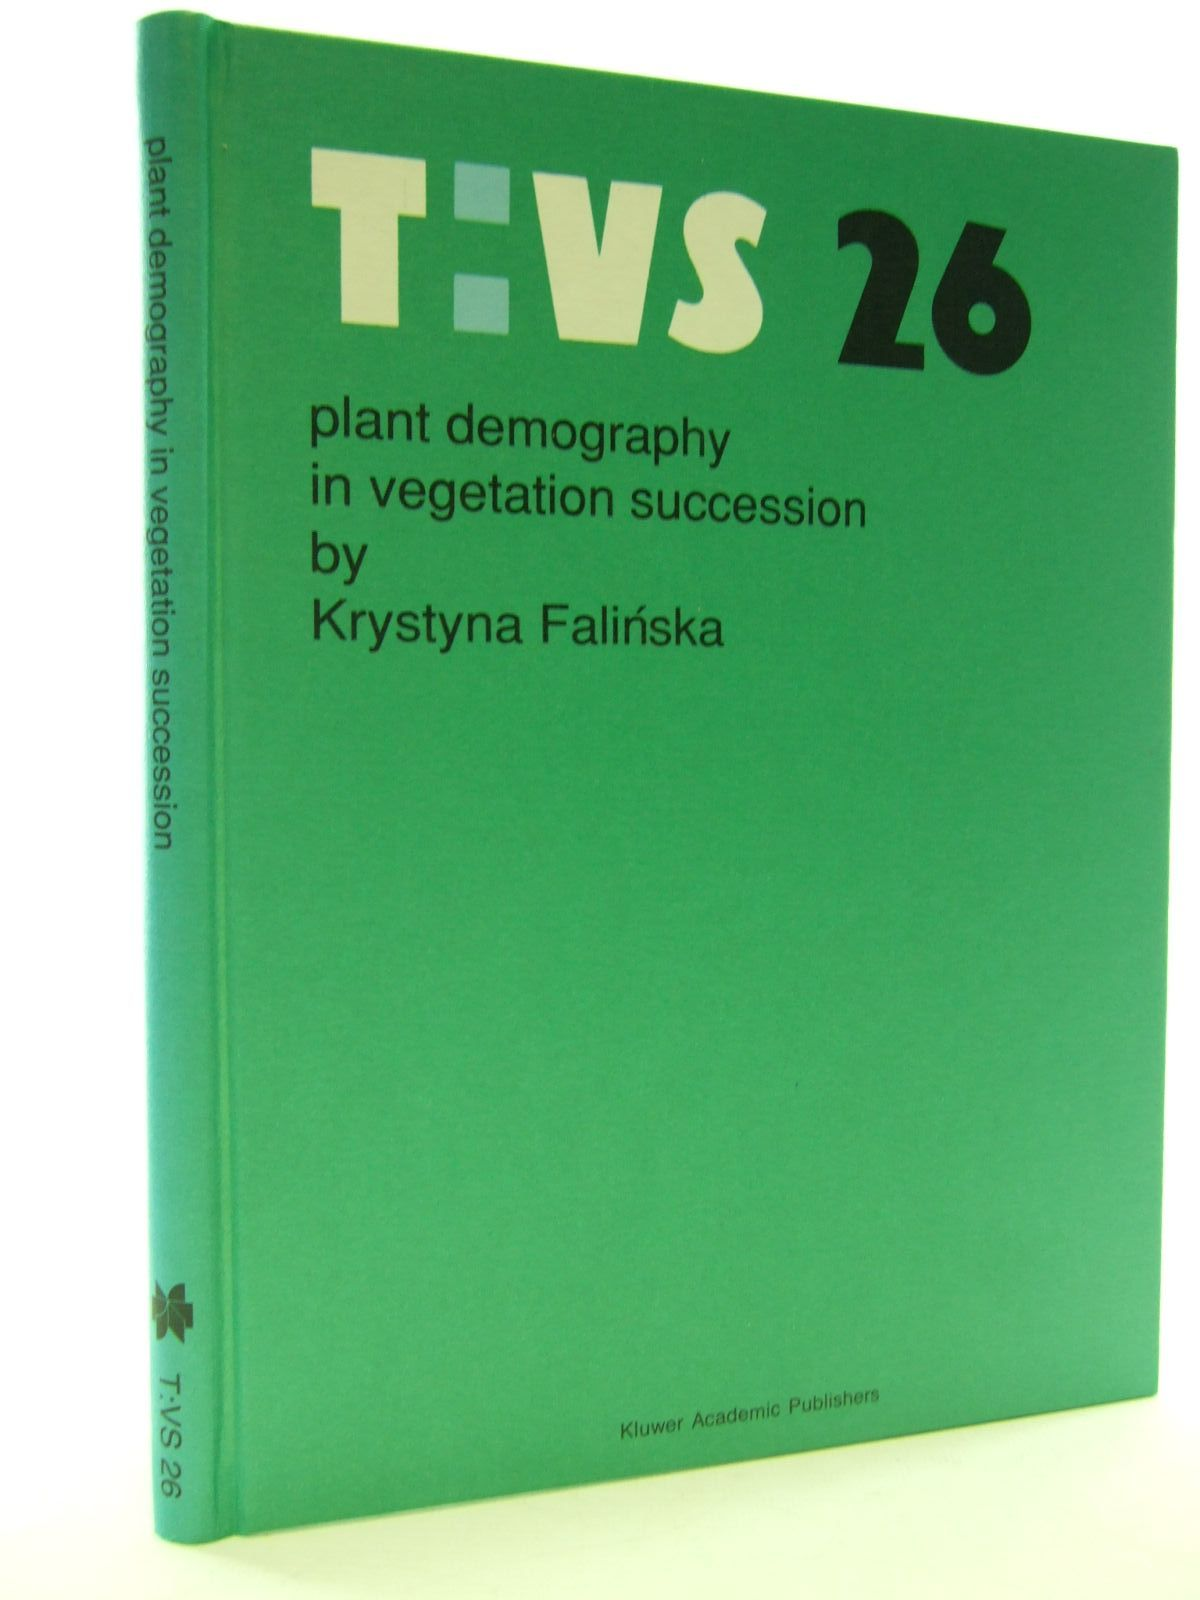 Photo of PLANT DEMOGRAPHY IN VEGETATION SUCCESSION written by Falinska, Krystyna published by Kluwer Academic Publishers (STOCK CODE: 1705763)  for sale by Stella & Rose's Books